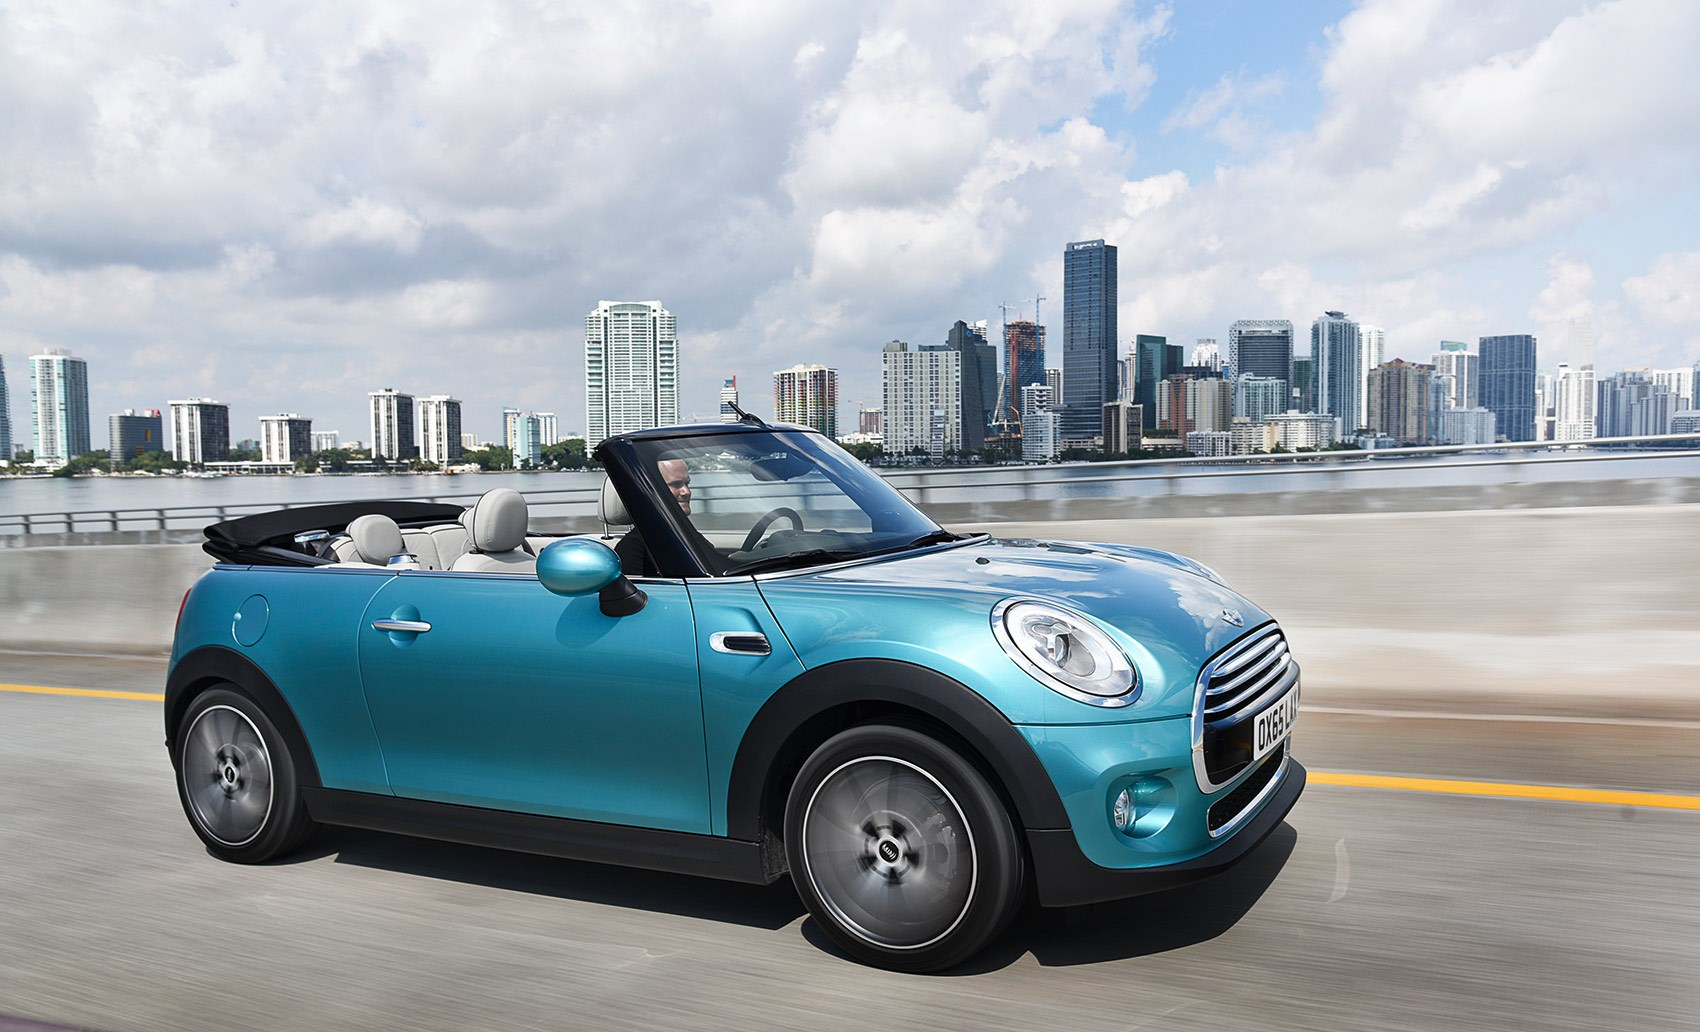 But Convertible Mini Cooper S Convertible First Drive Car April 2016 Car Magazine